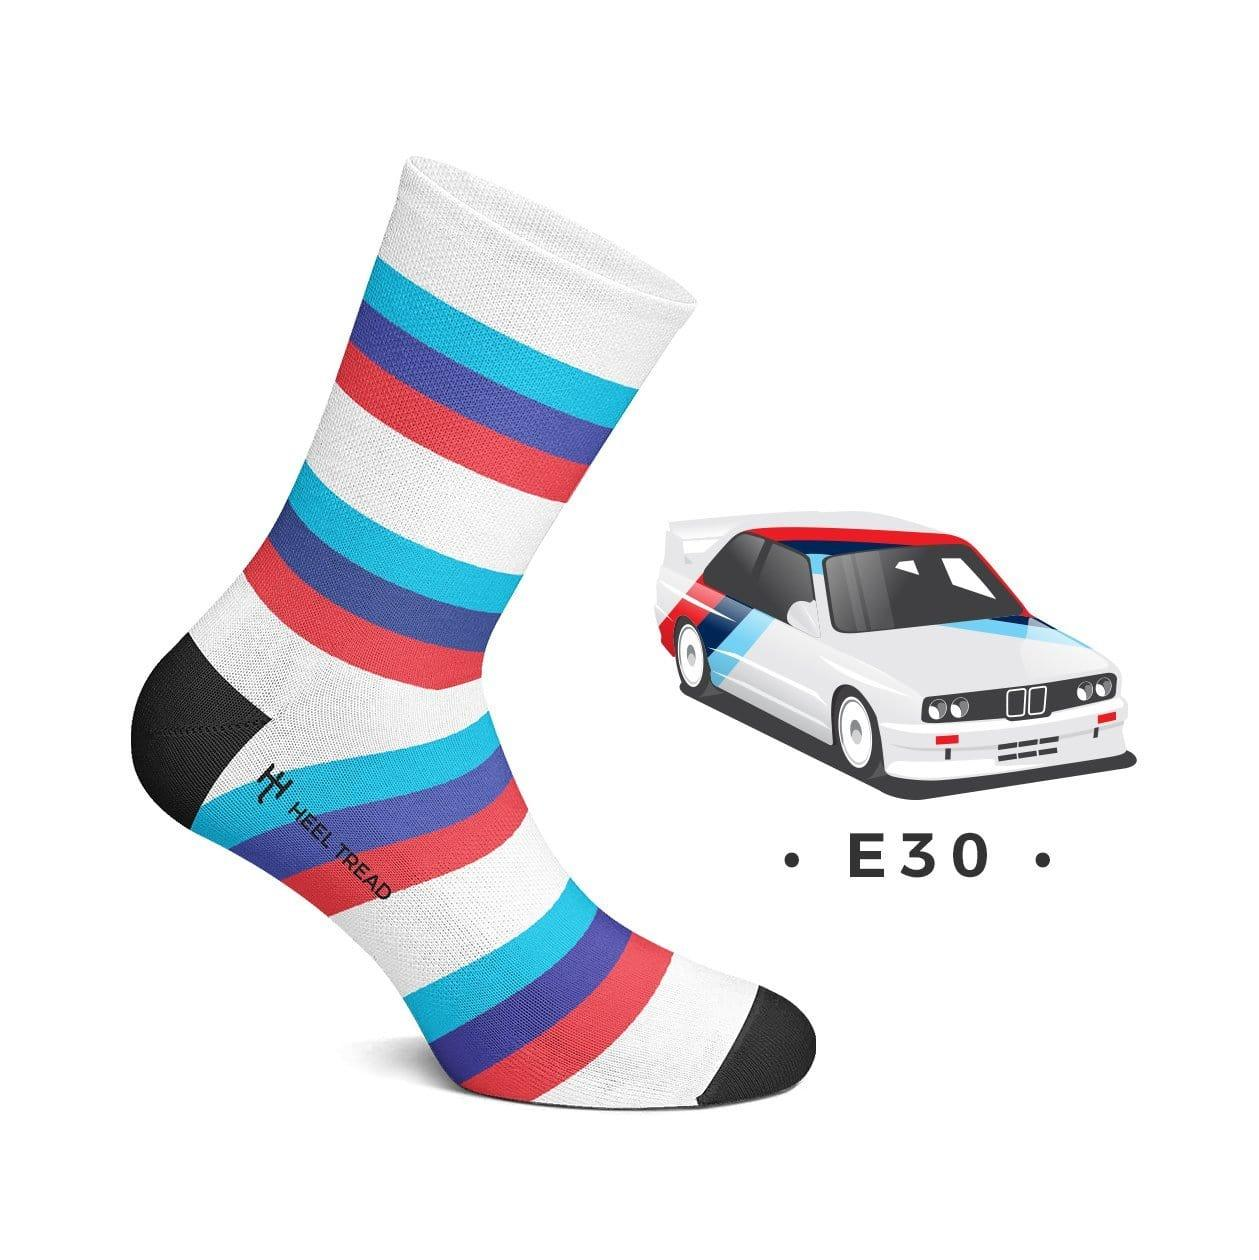 E30 SOCKS - Corleon